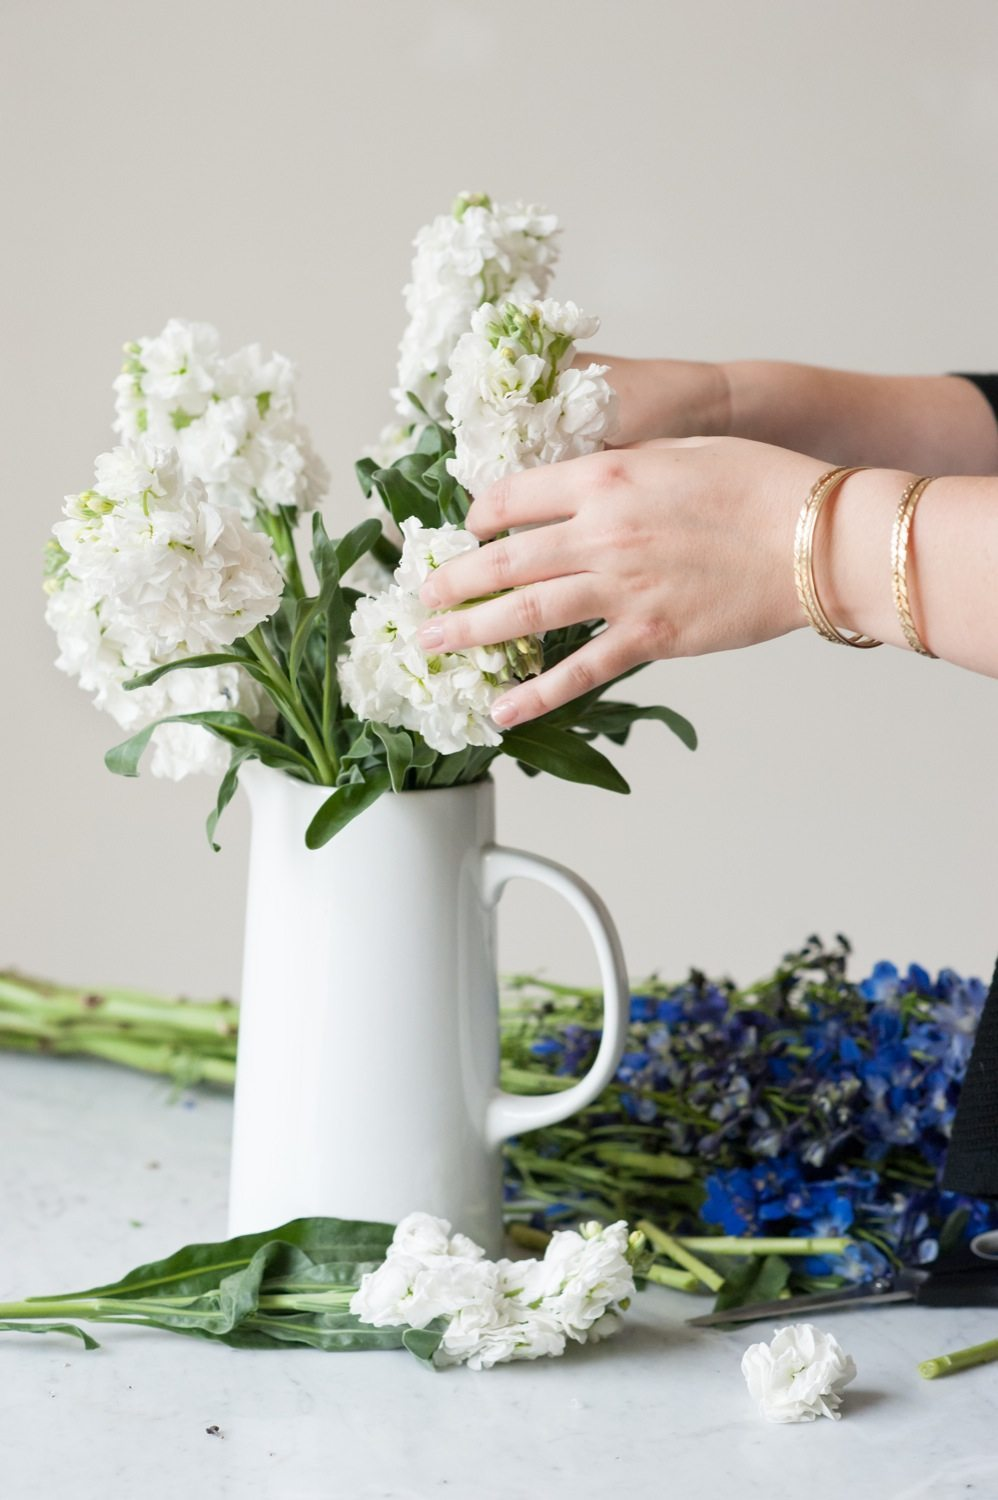 How to Keep Flowers Fresh for Longer